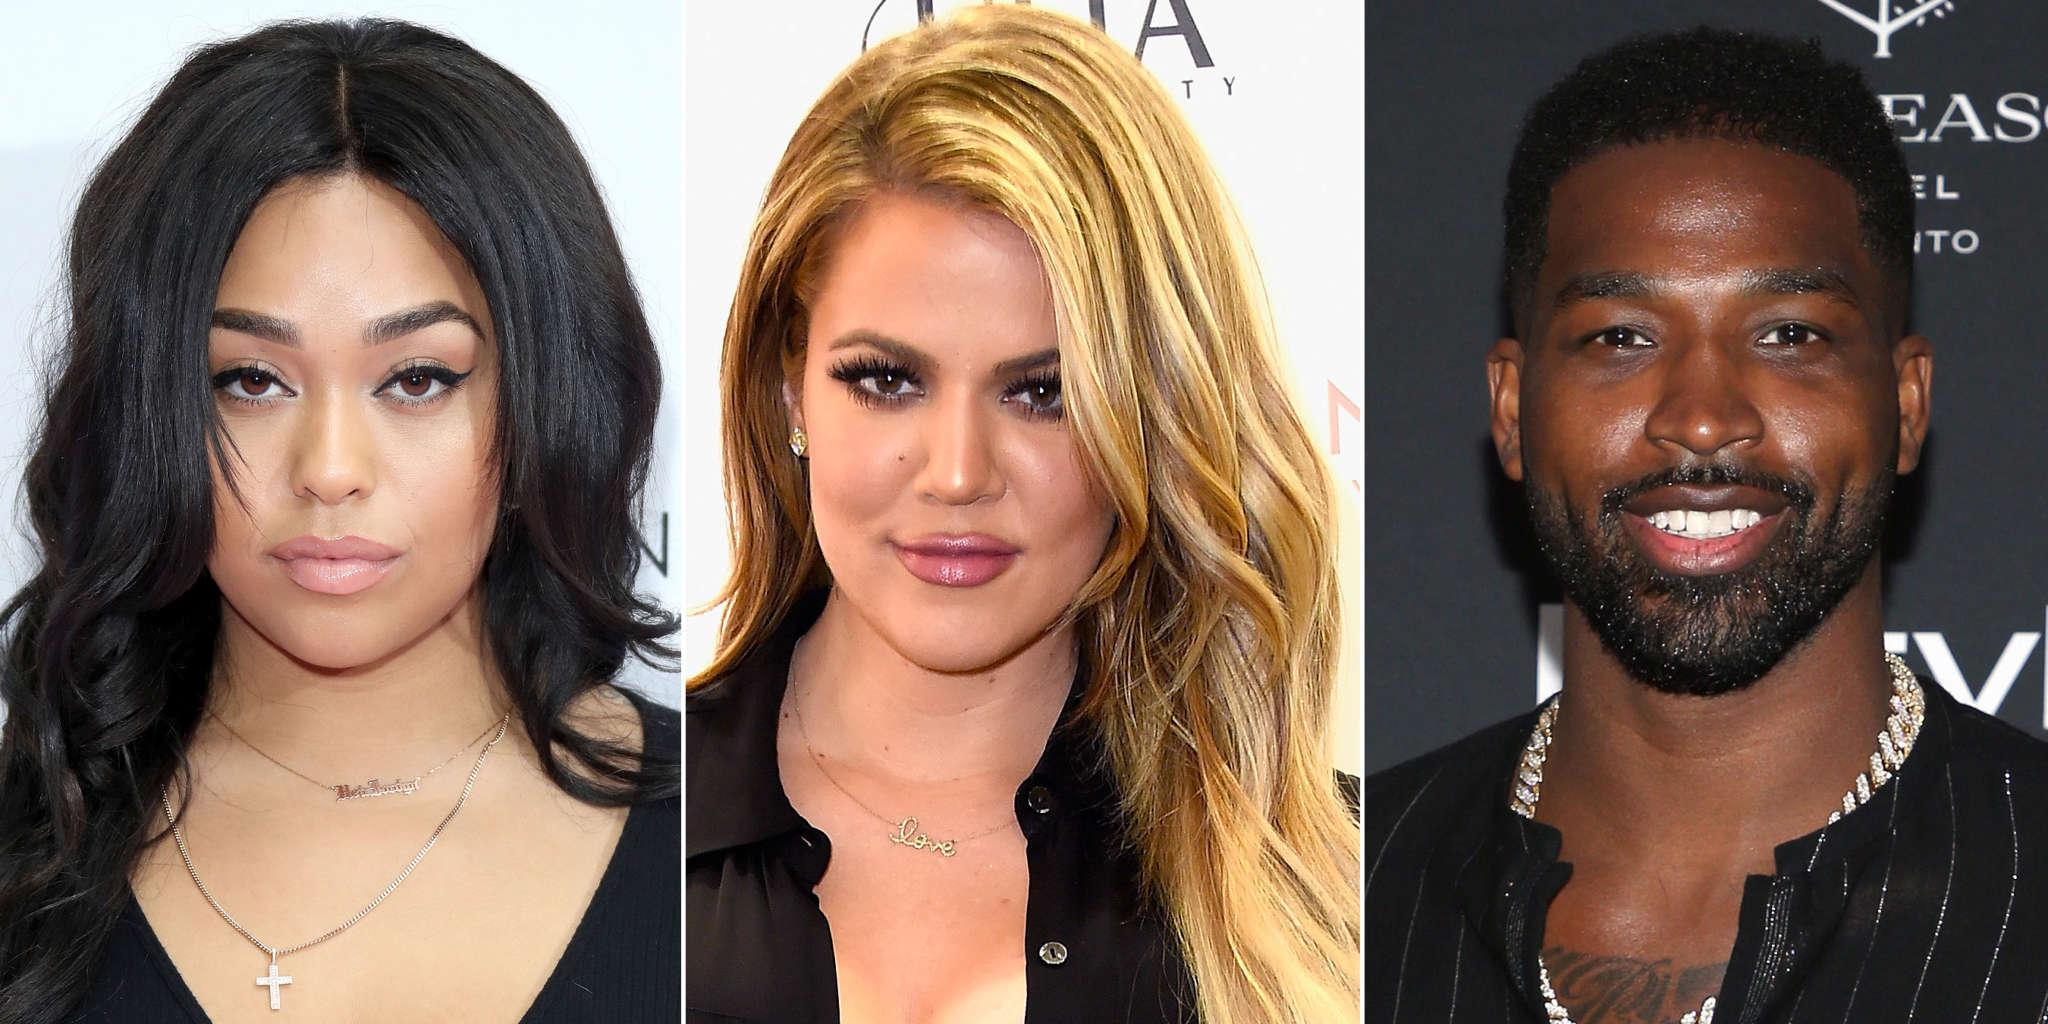 KUWK: Khloe Kardashian Says She Does Not Wish Tristan Thompson And Jordyn Woods To Get Any Hate - Here's Why!